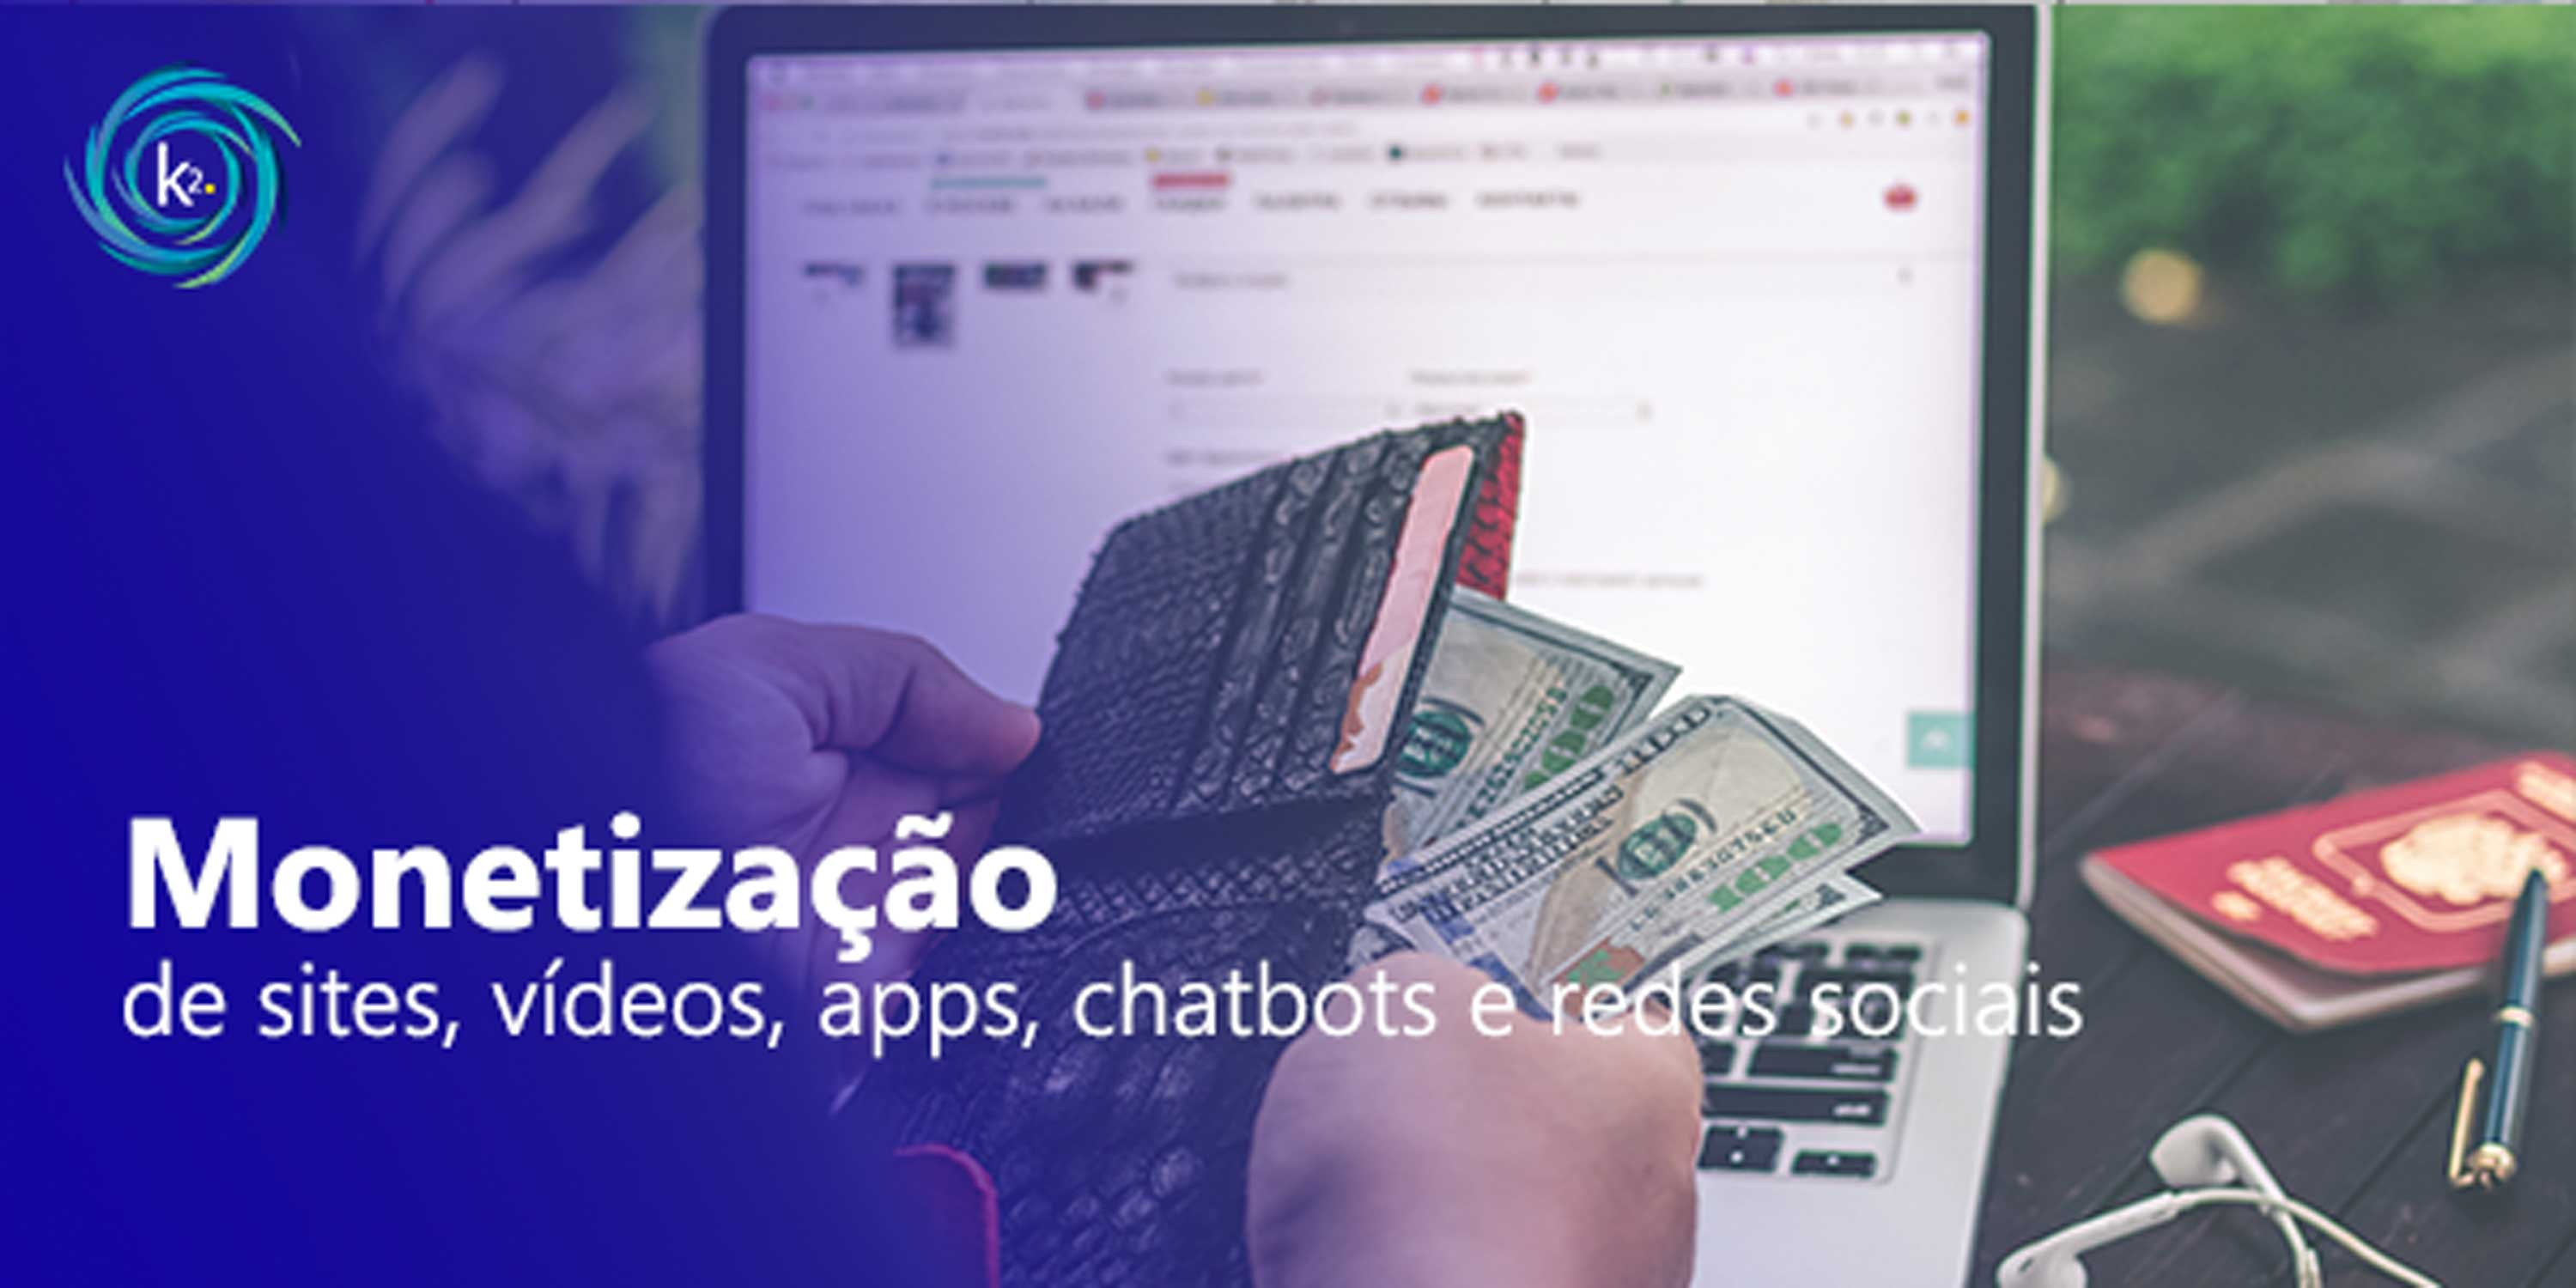 monetizacao-de-sites-videos-apps-chatbots-e-redes-sociais